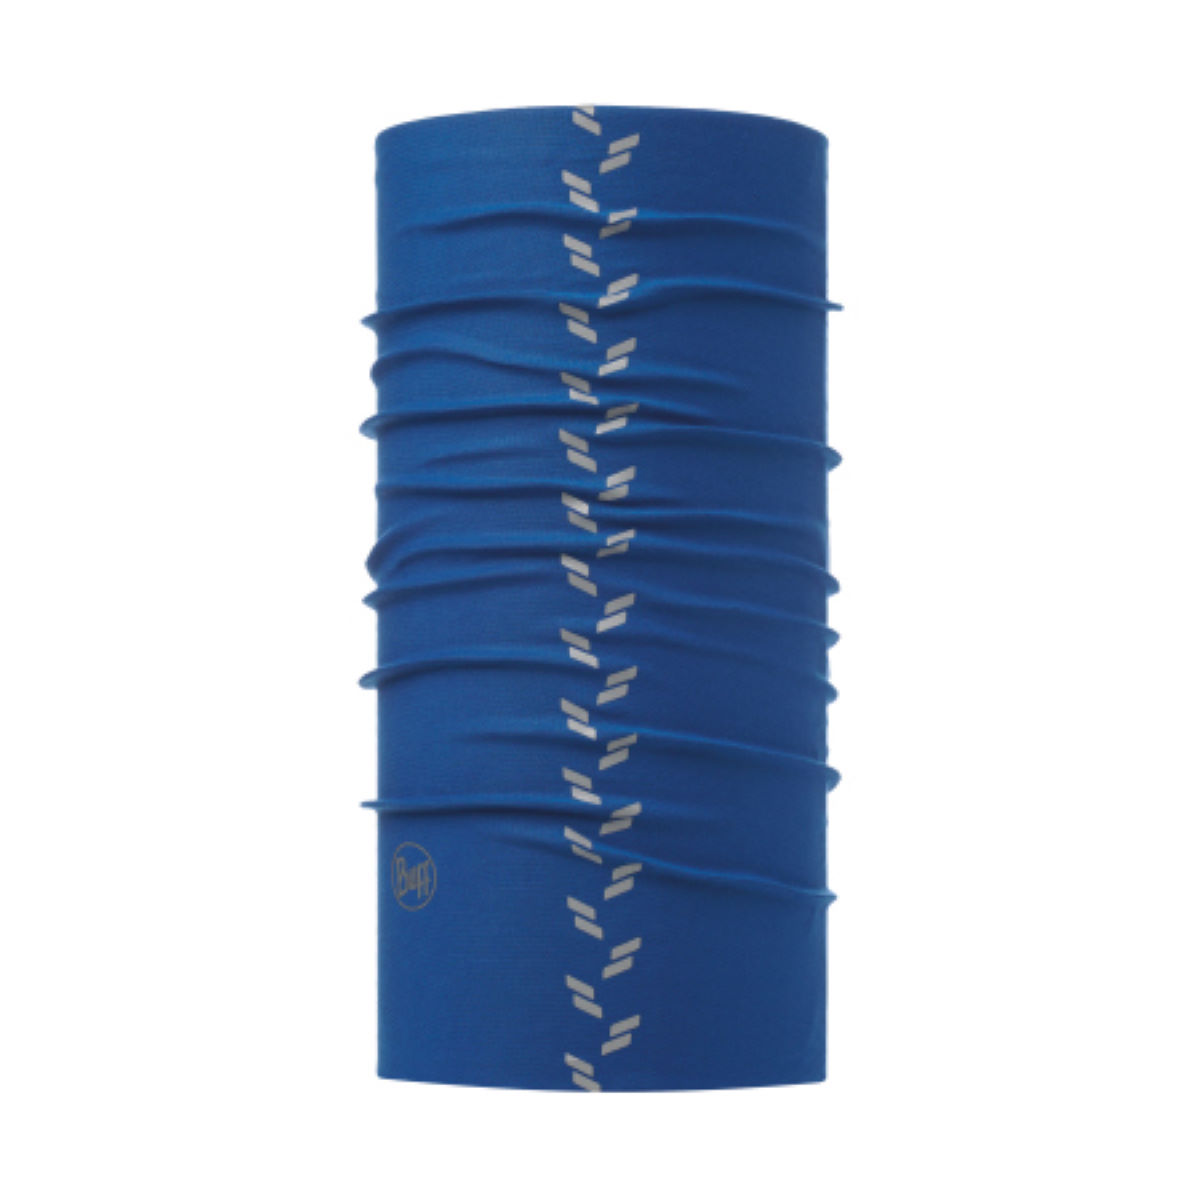 Braga de cuello Buff R-Solid Blue Skydiver (reflectante) - Bufandas